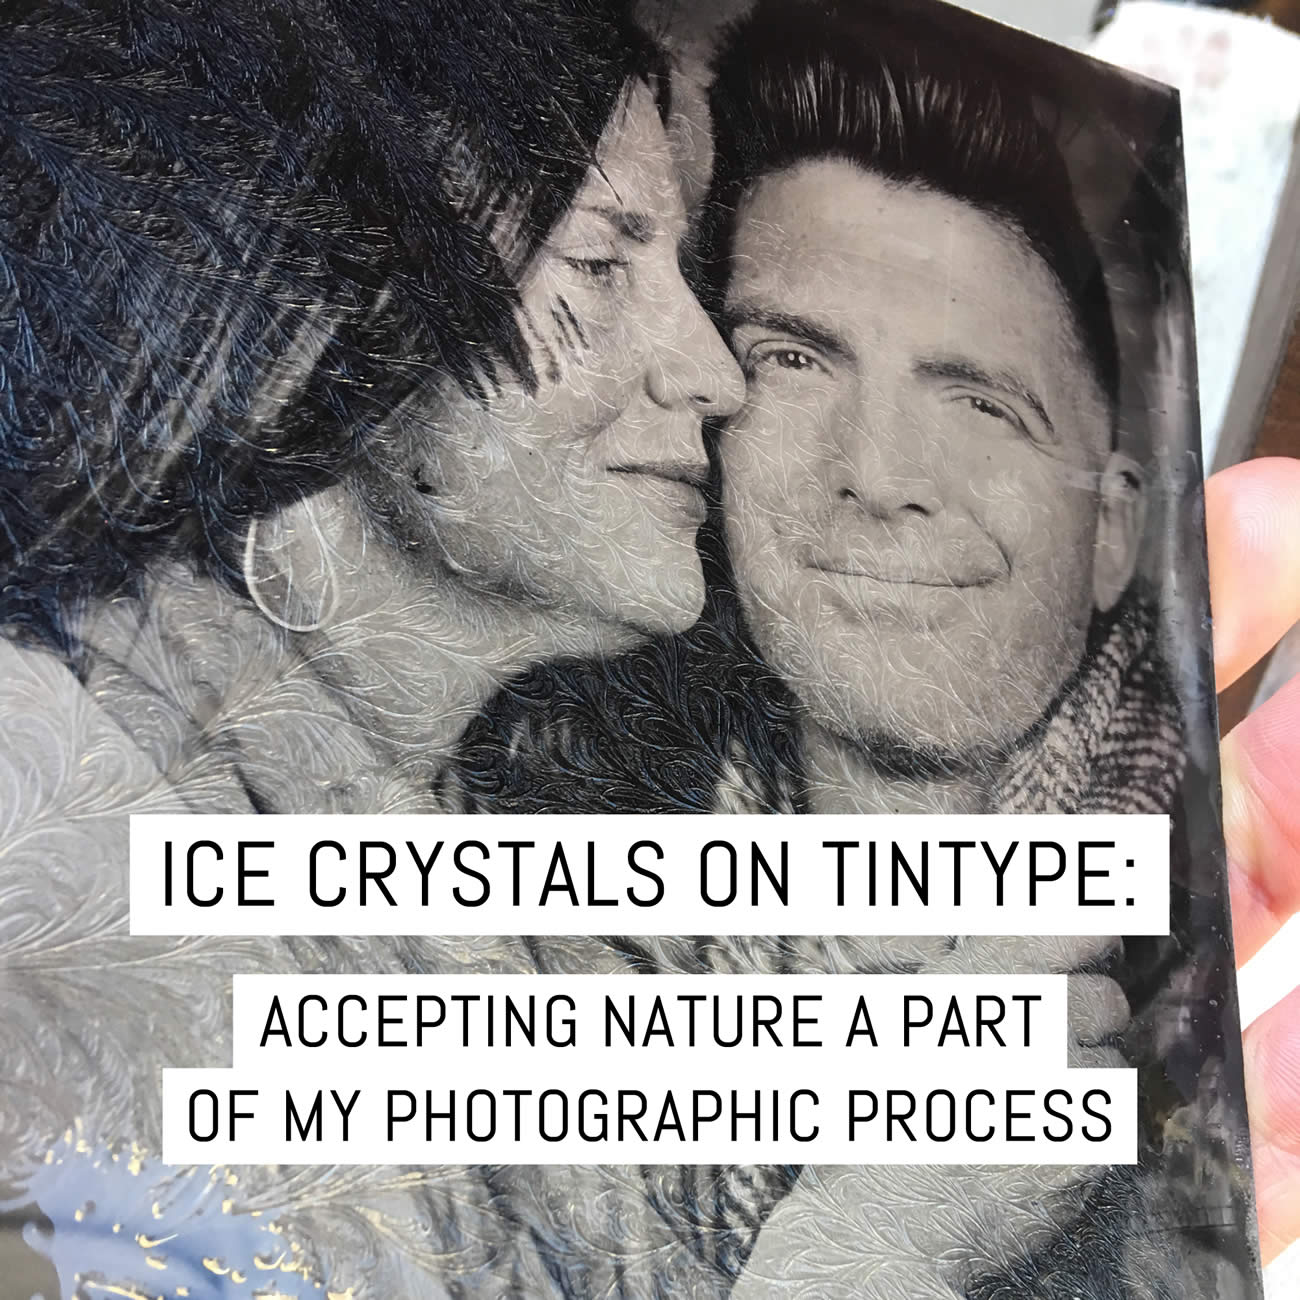 Ice crystals on tintype: making nature a part of my photographic process aka a song of ice then fire